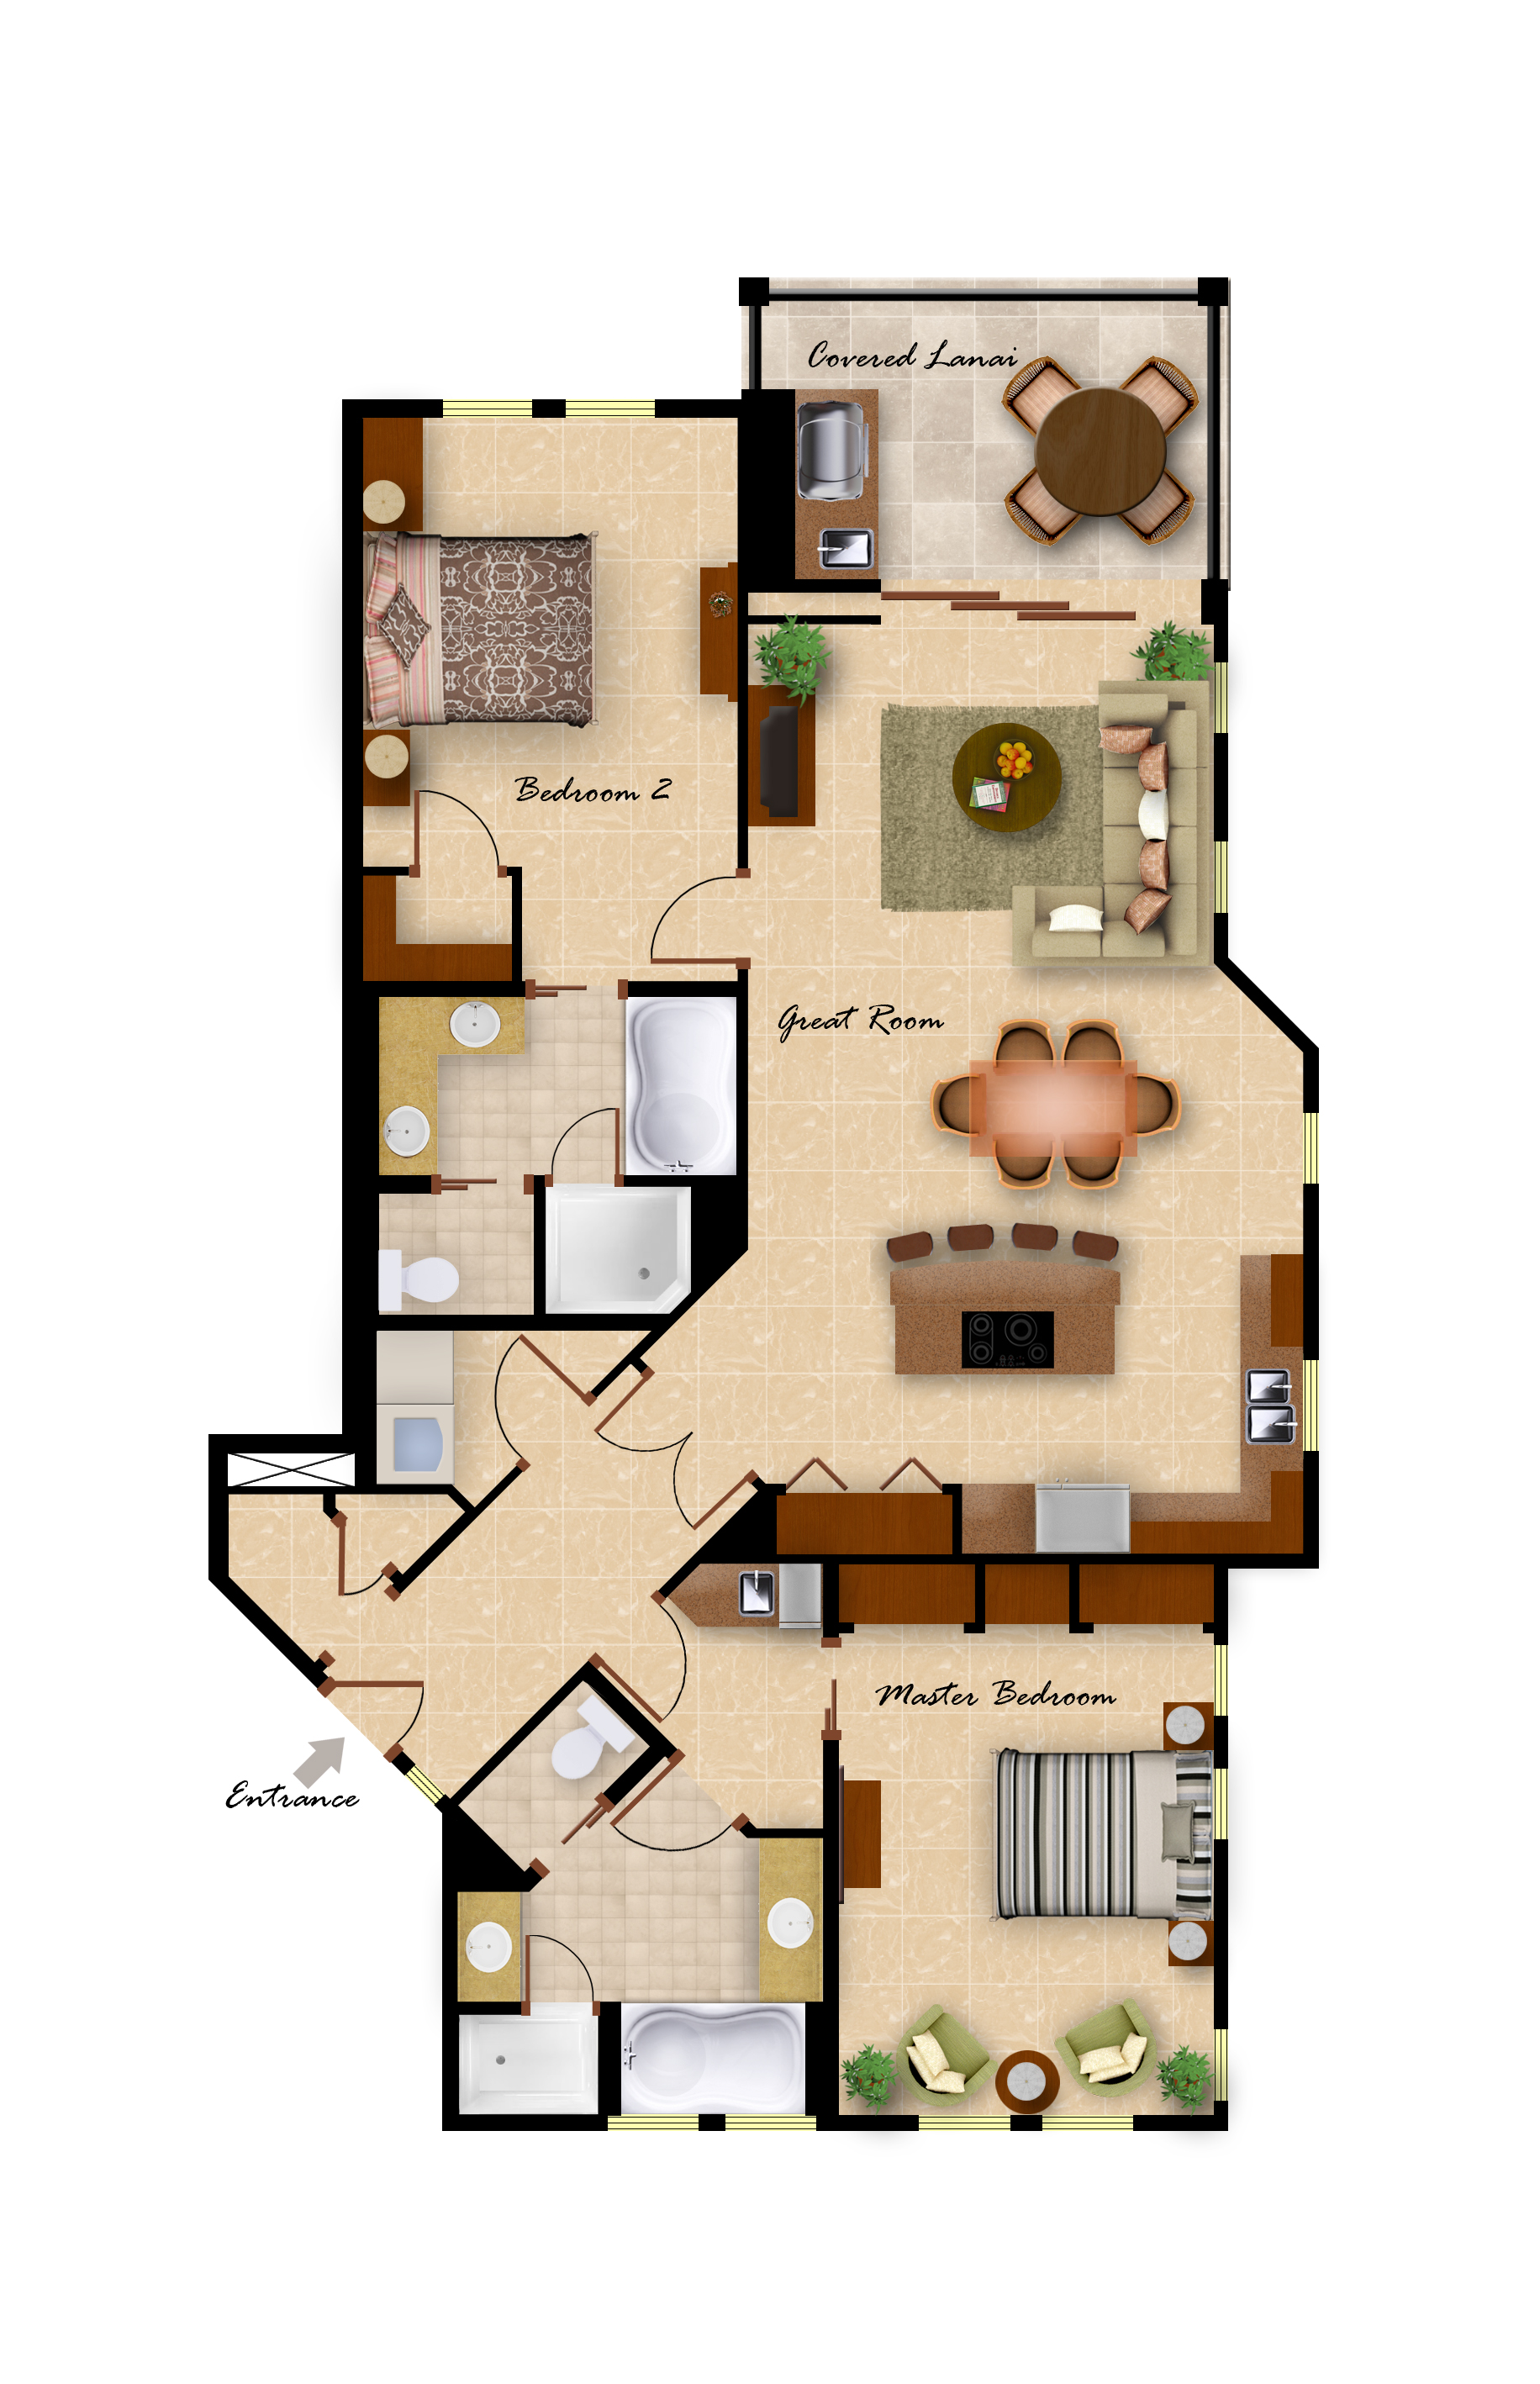 Bedroom Floor Layout Kolea Vacation Rentals